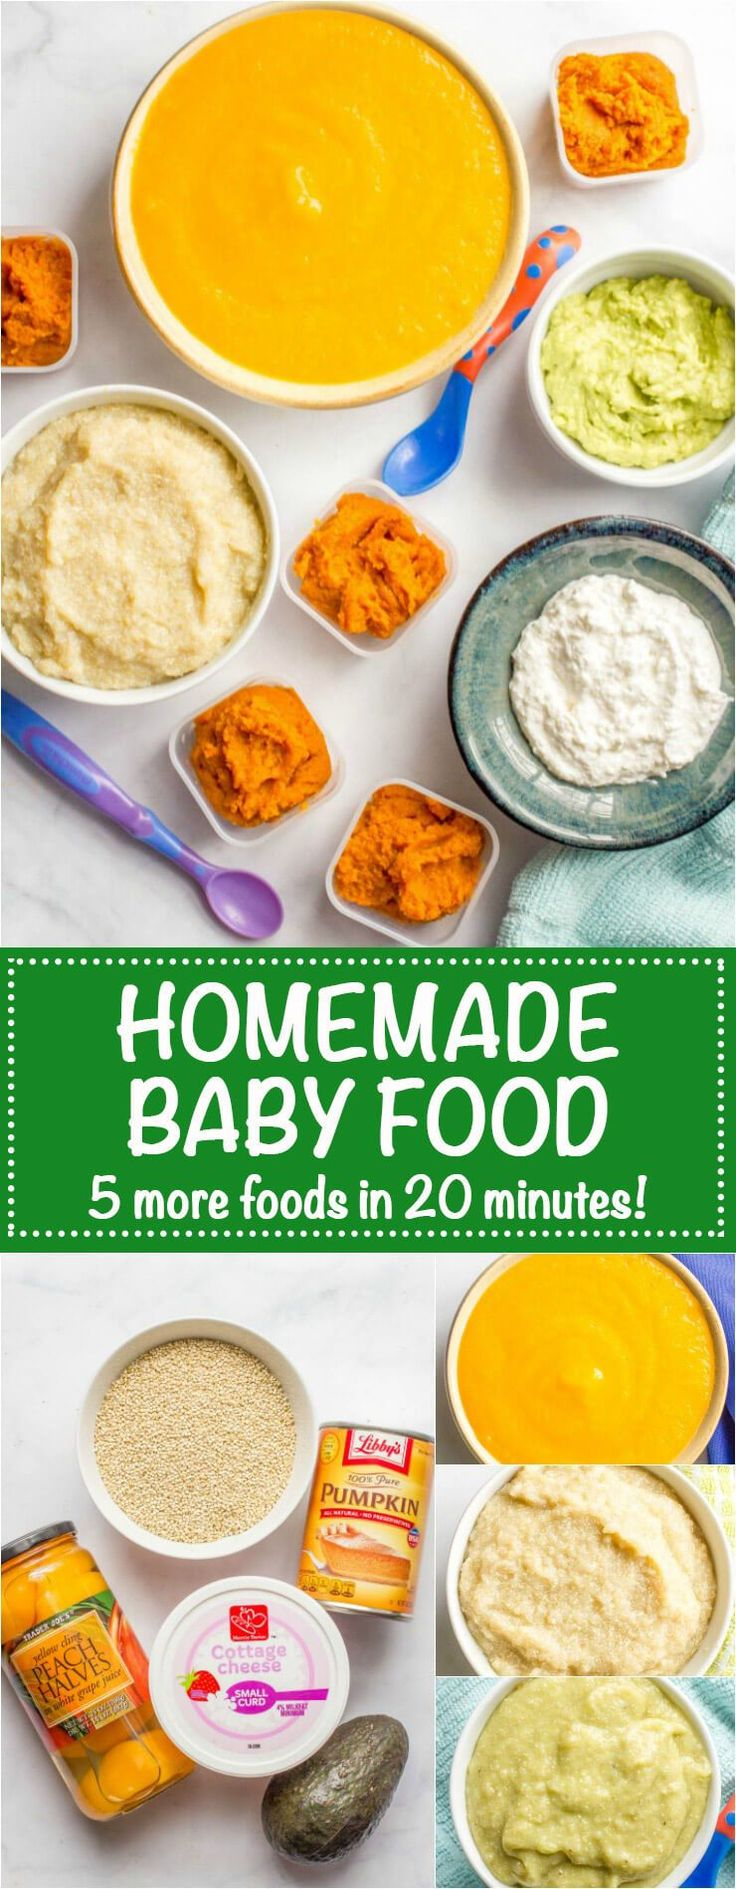 Homemade baby food 5 easy beginner foods ready in just 20 minutes